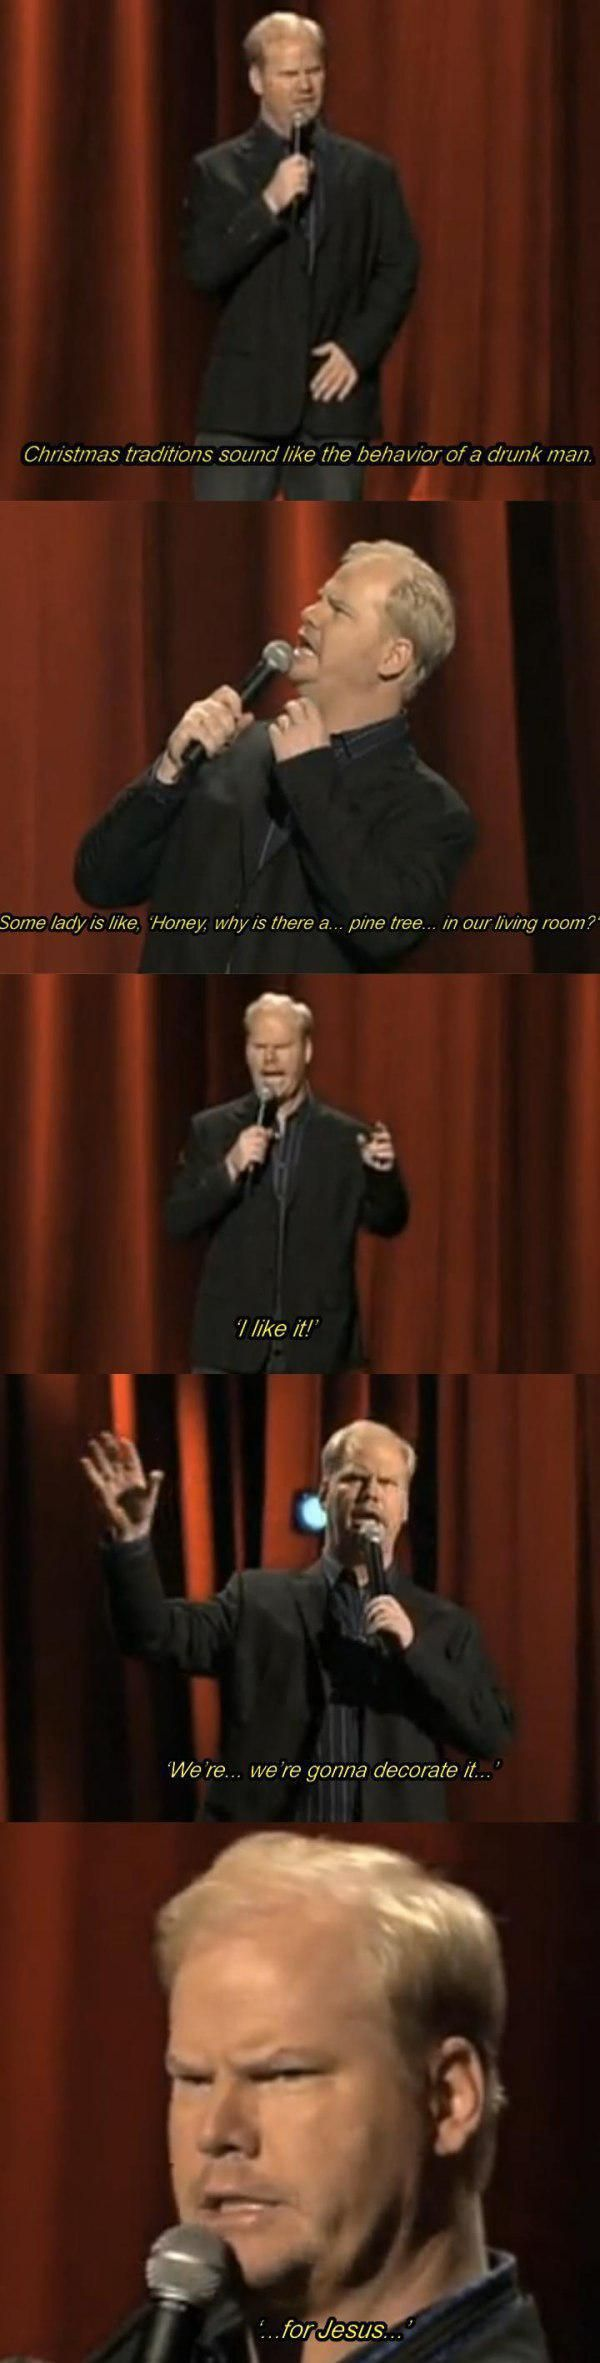 Jim-Gaffigan-quotes-funny-3